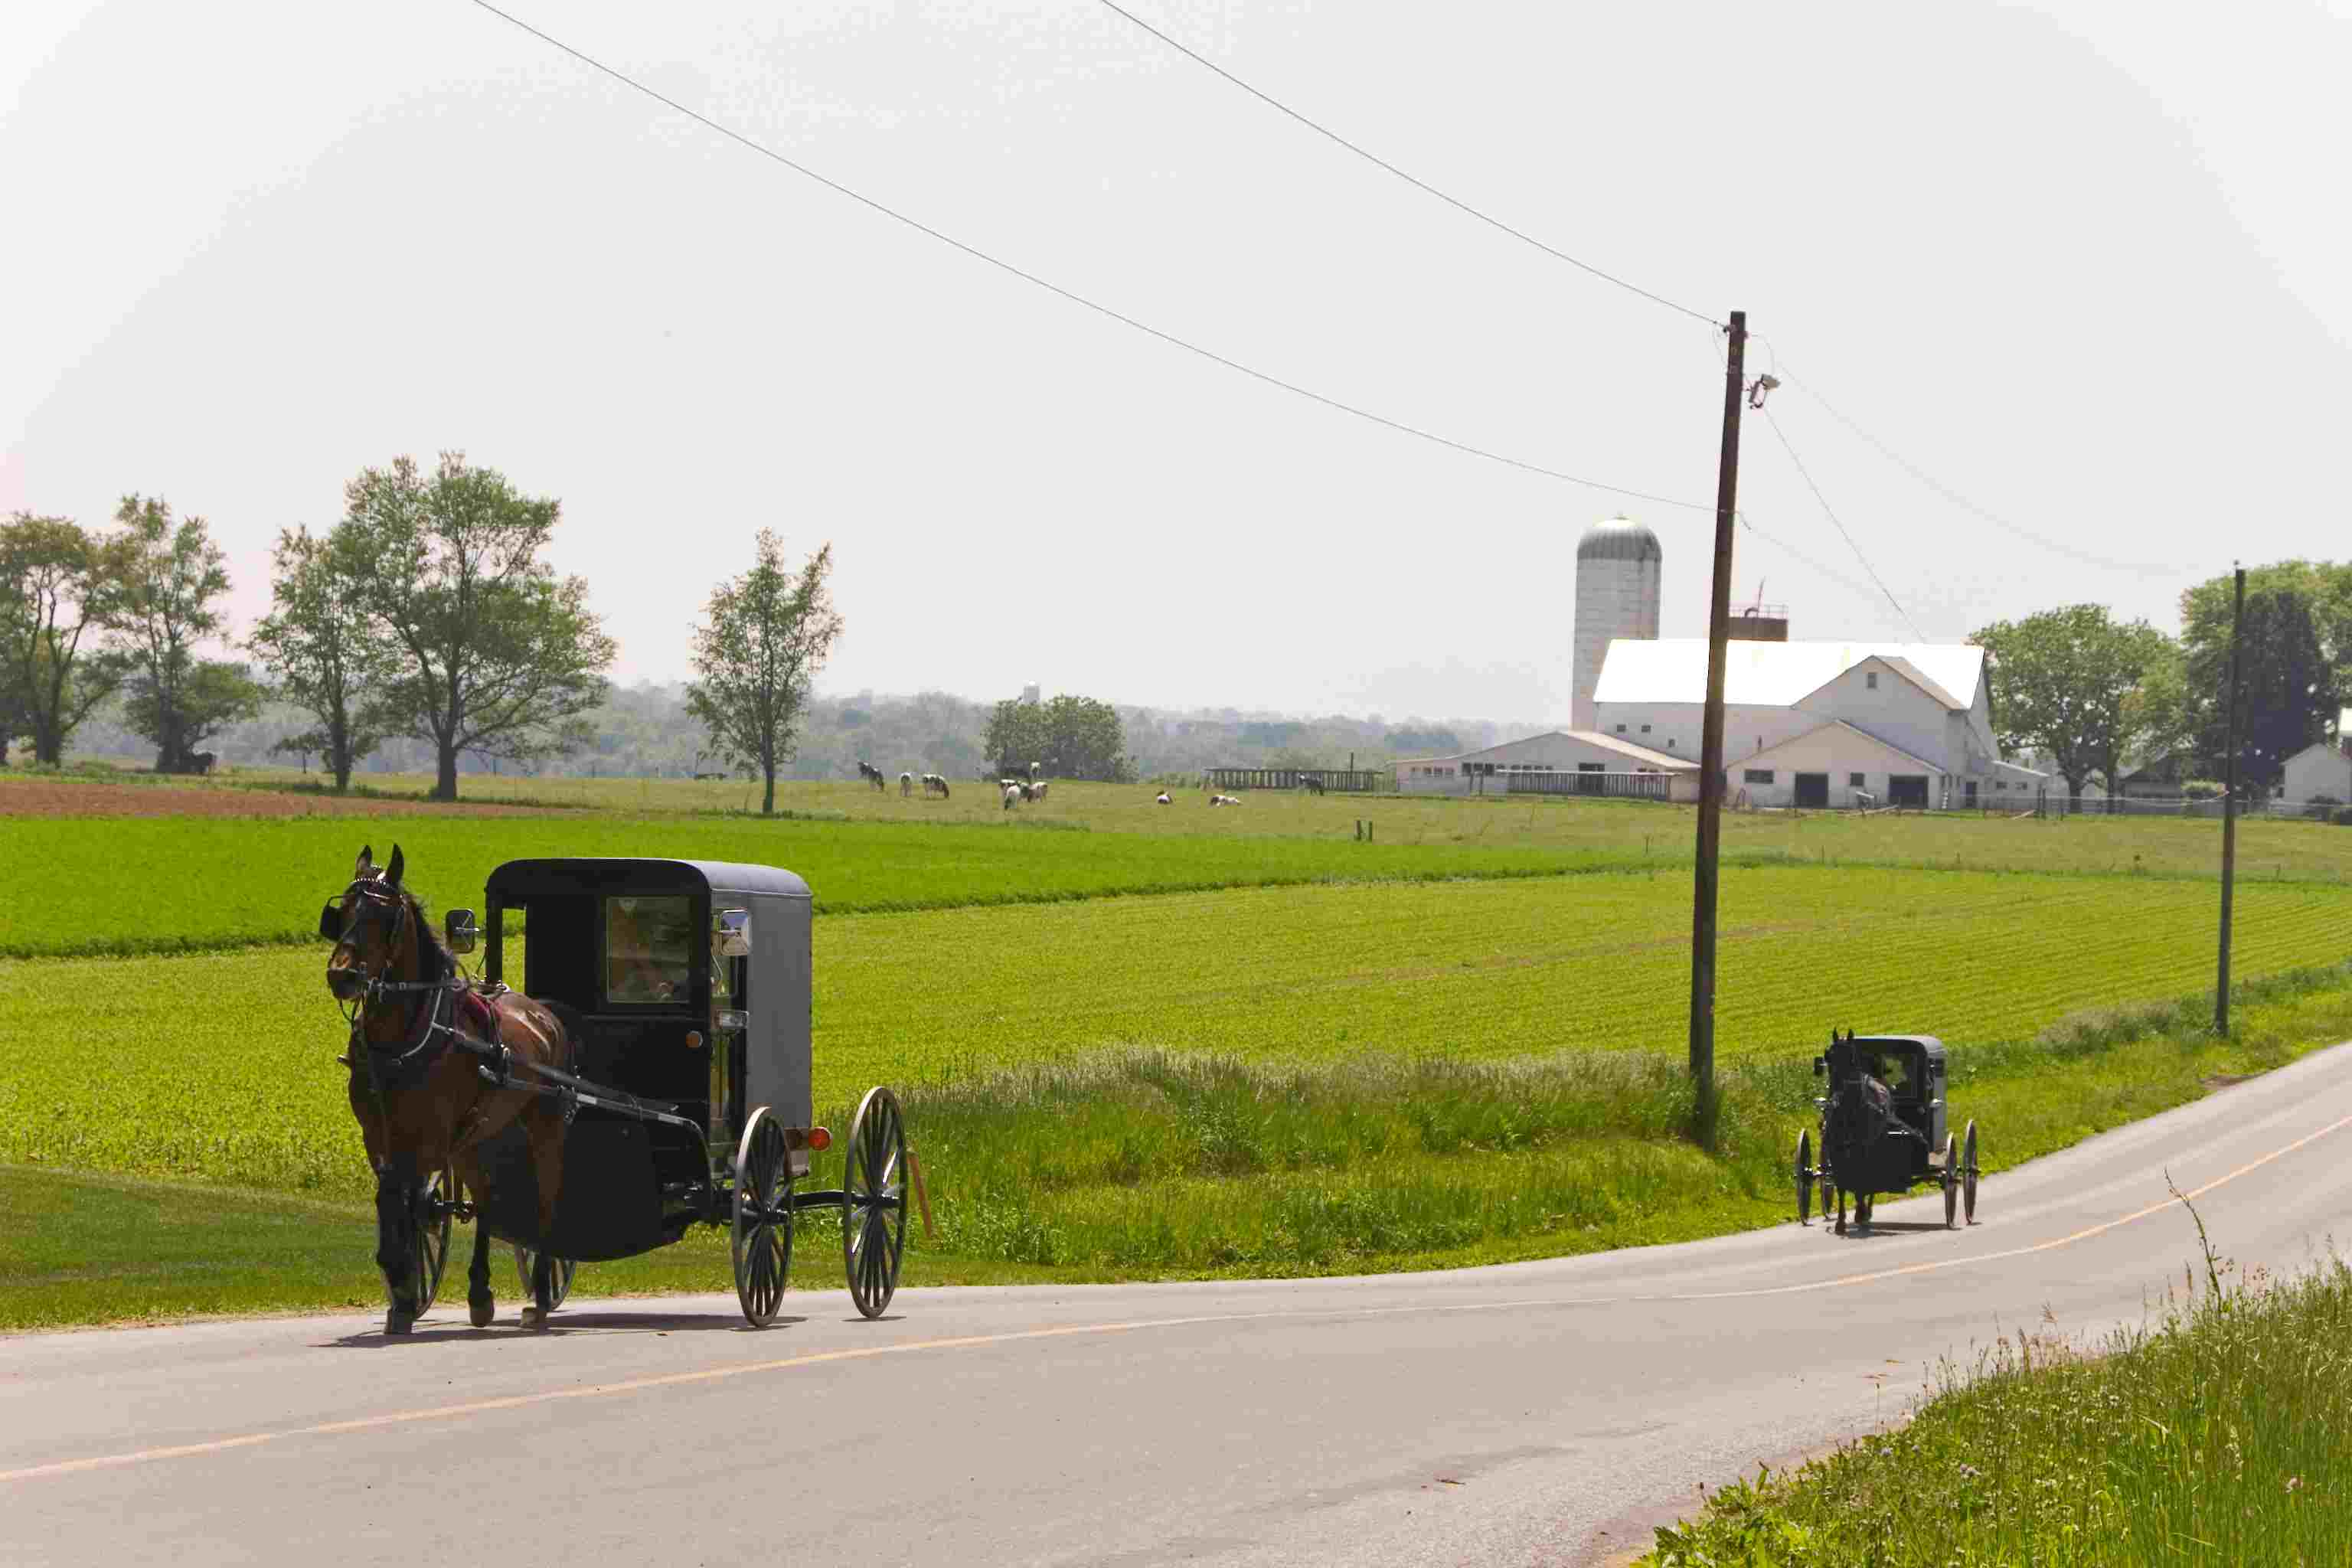 History of the Amish Settlements and Orders in America